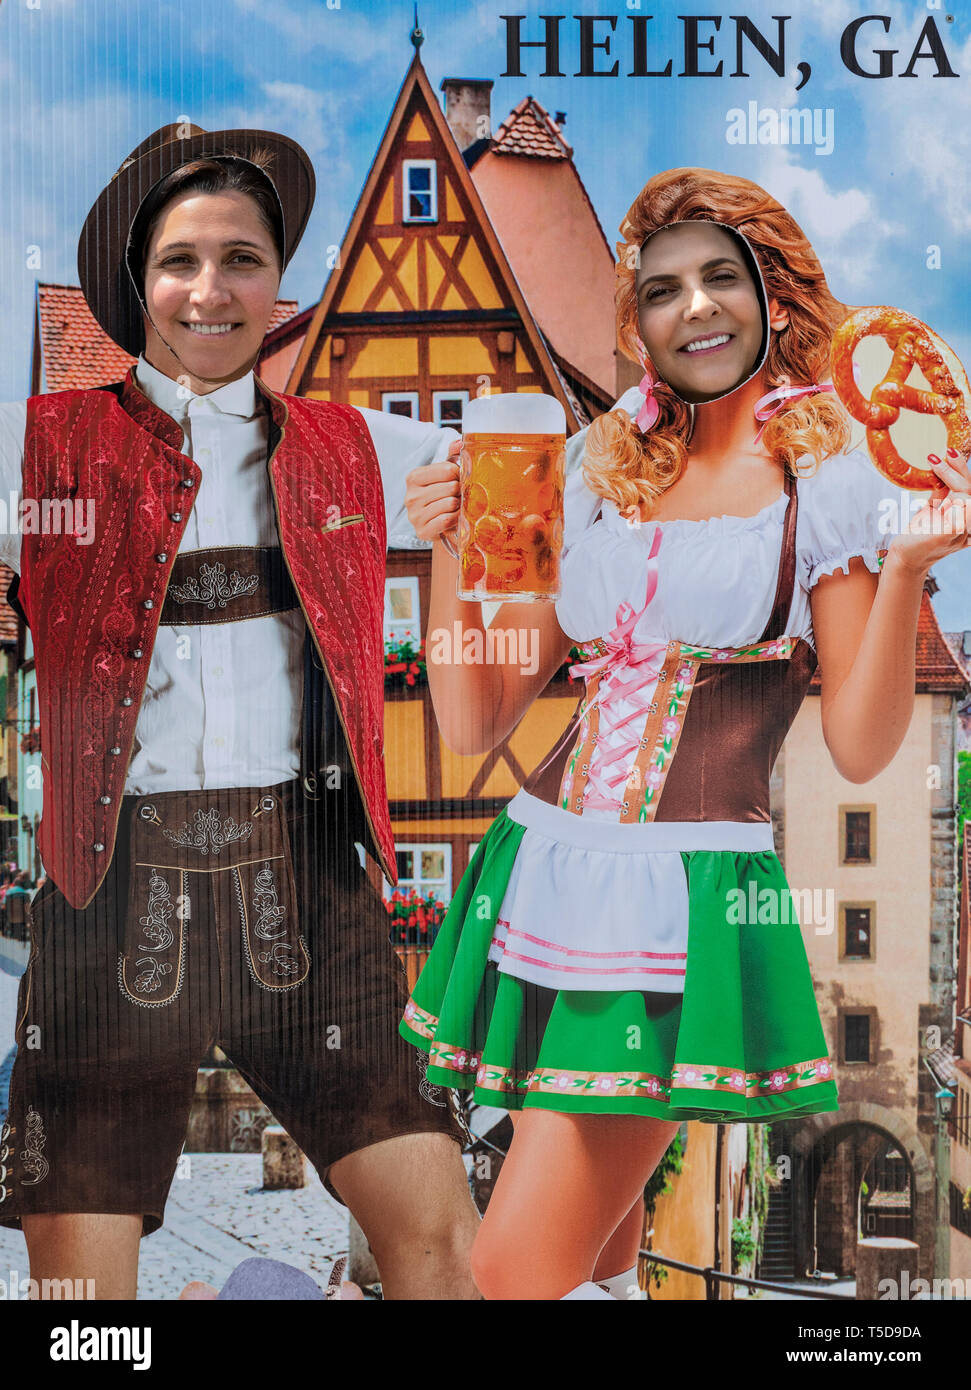 Tourists pose in German Octoberfest motif cut-out, Helen, Georgia, USA. - Stock Image